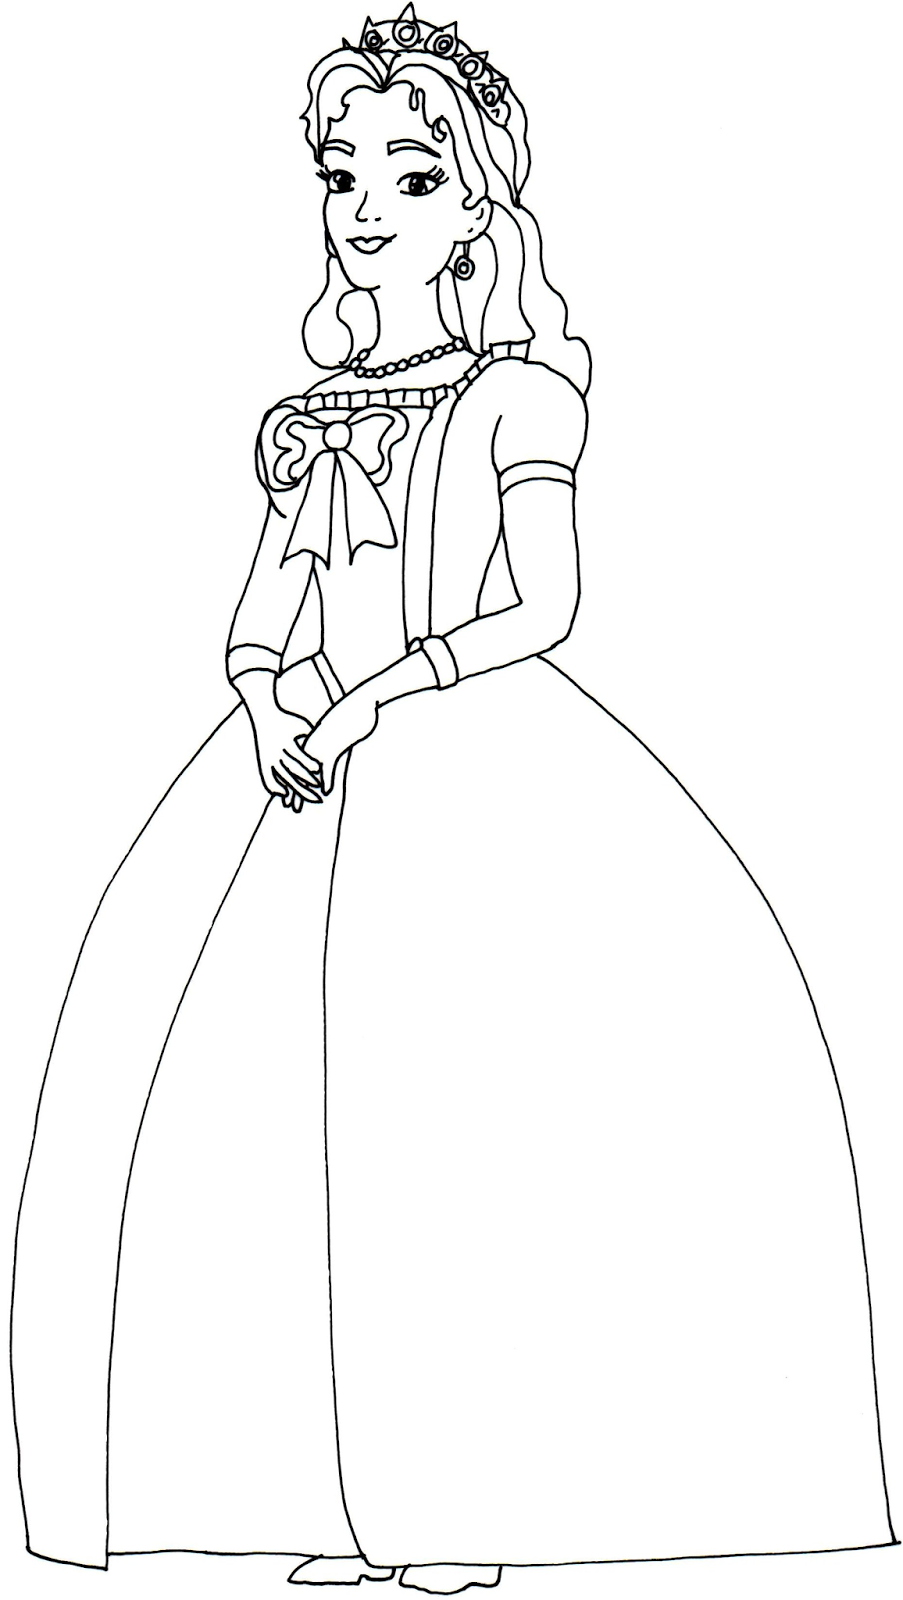 Generic princess coloring pages - Coloring Page Here Letter Connection